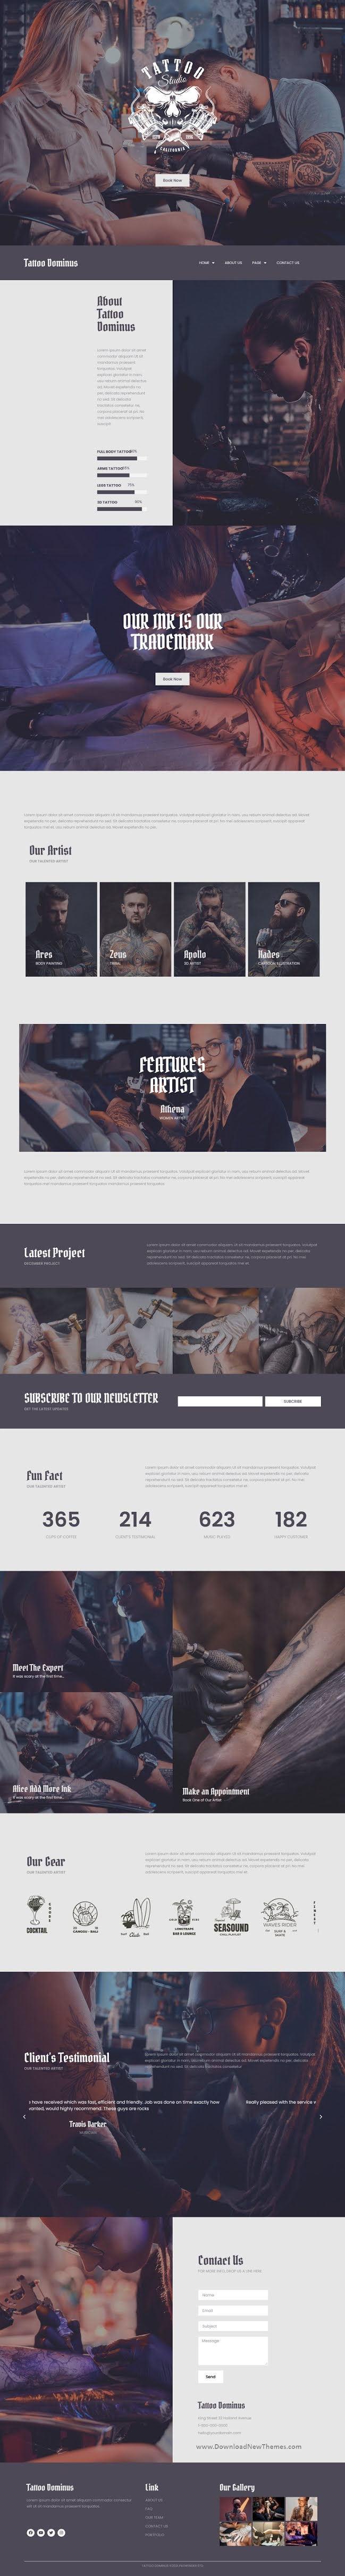 Tattoo Studio Elementor Template Kits